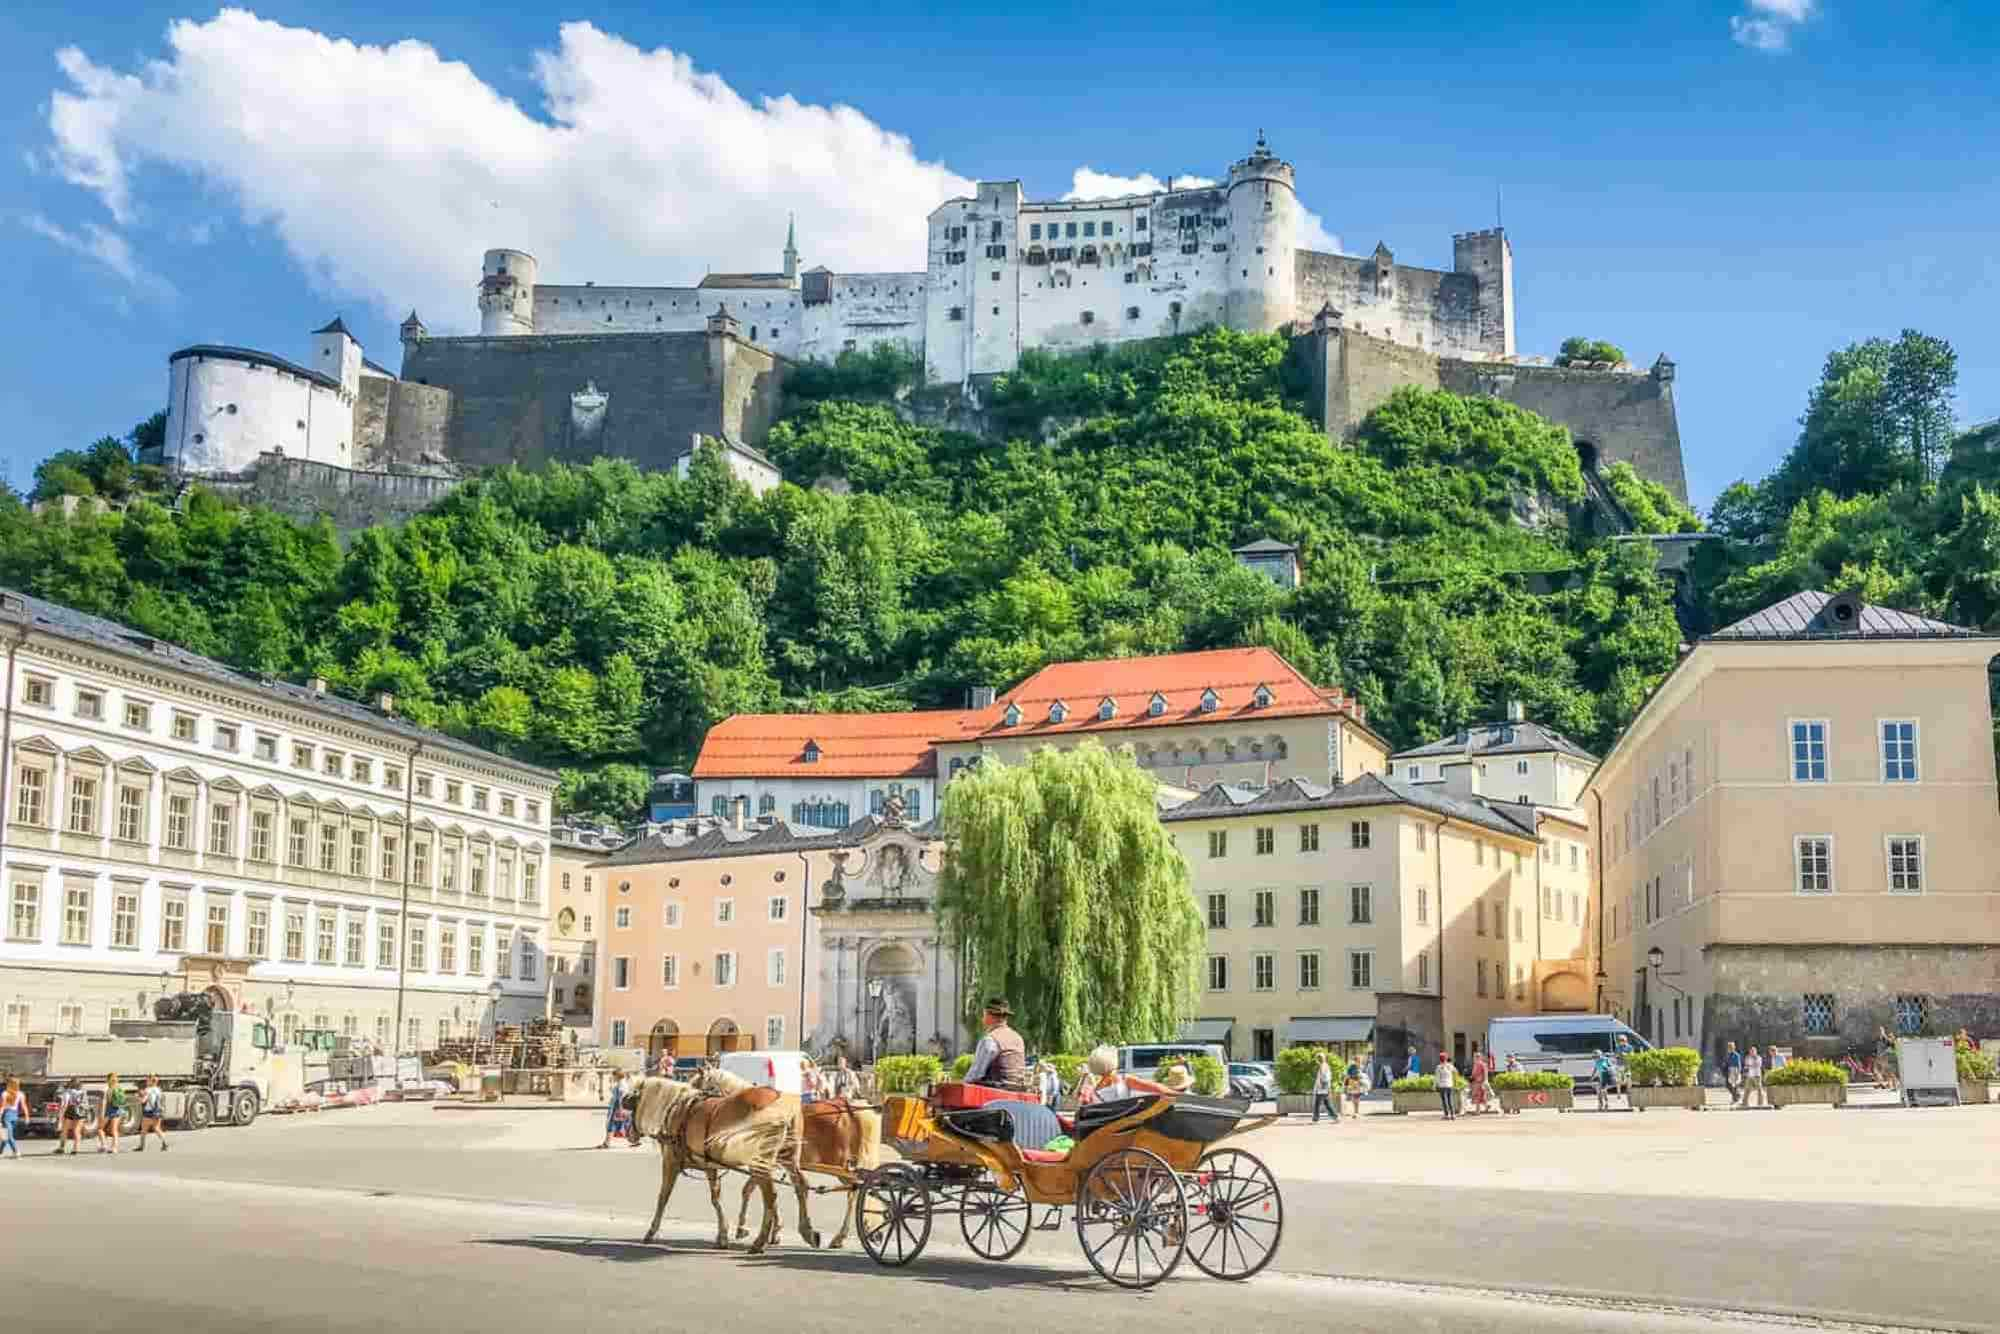 A classic stop on any Bavaria road trip is Salzburg